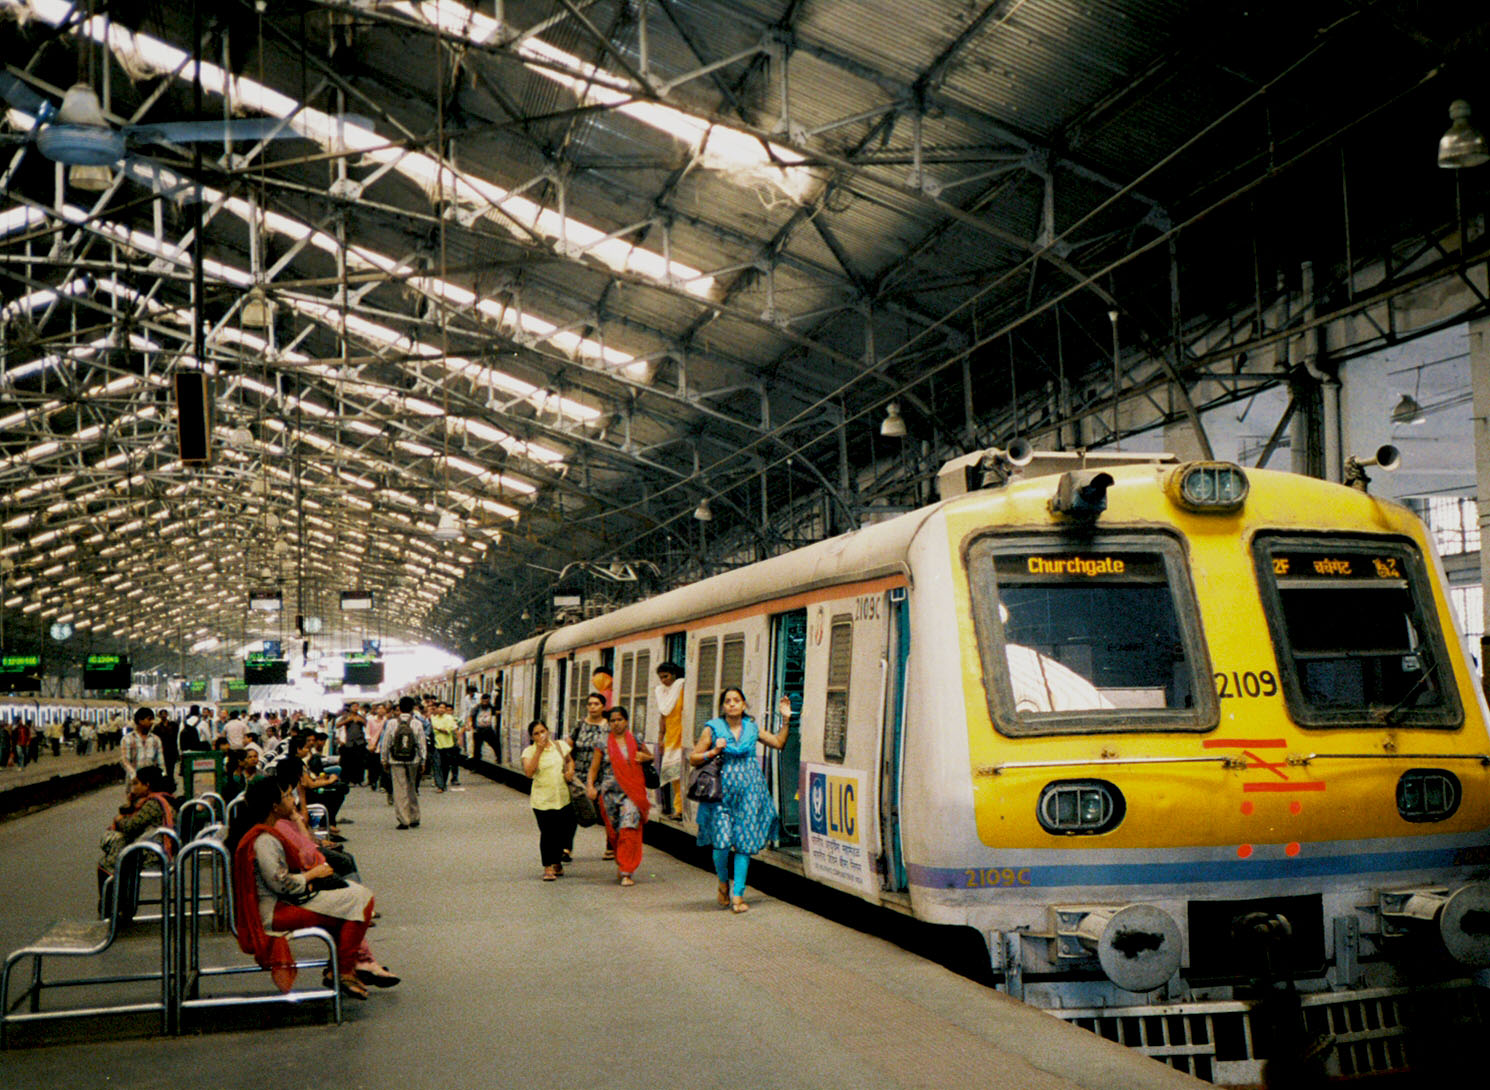 mumbai_train_station_2_india_march_2013 copy